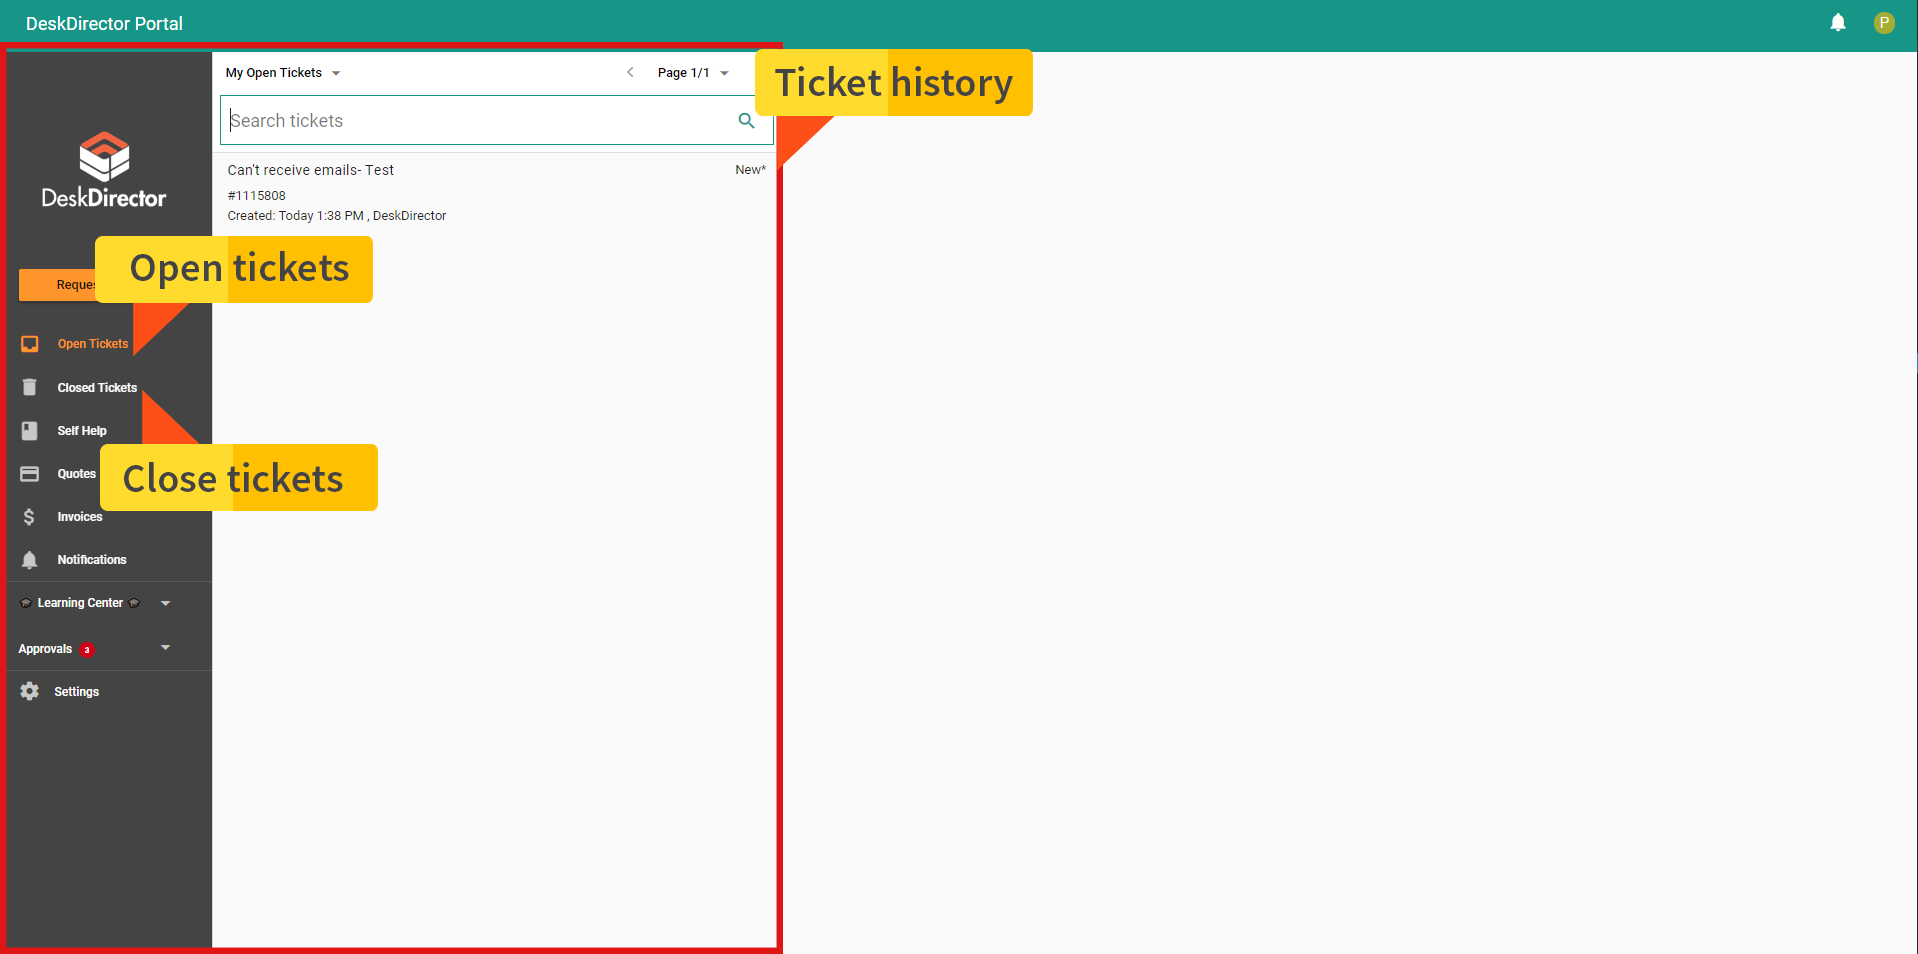 Ticket management - msp client portal